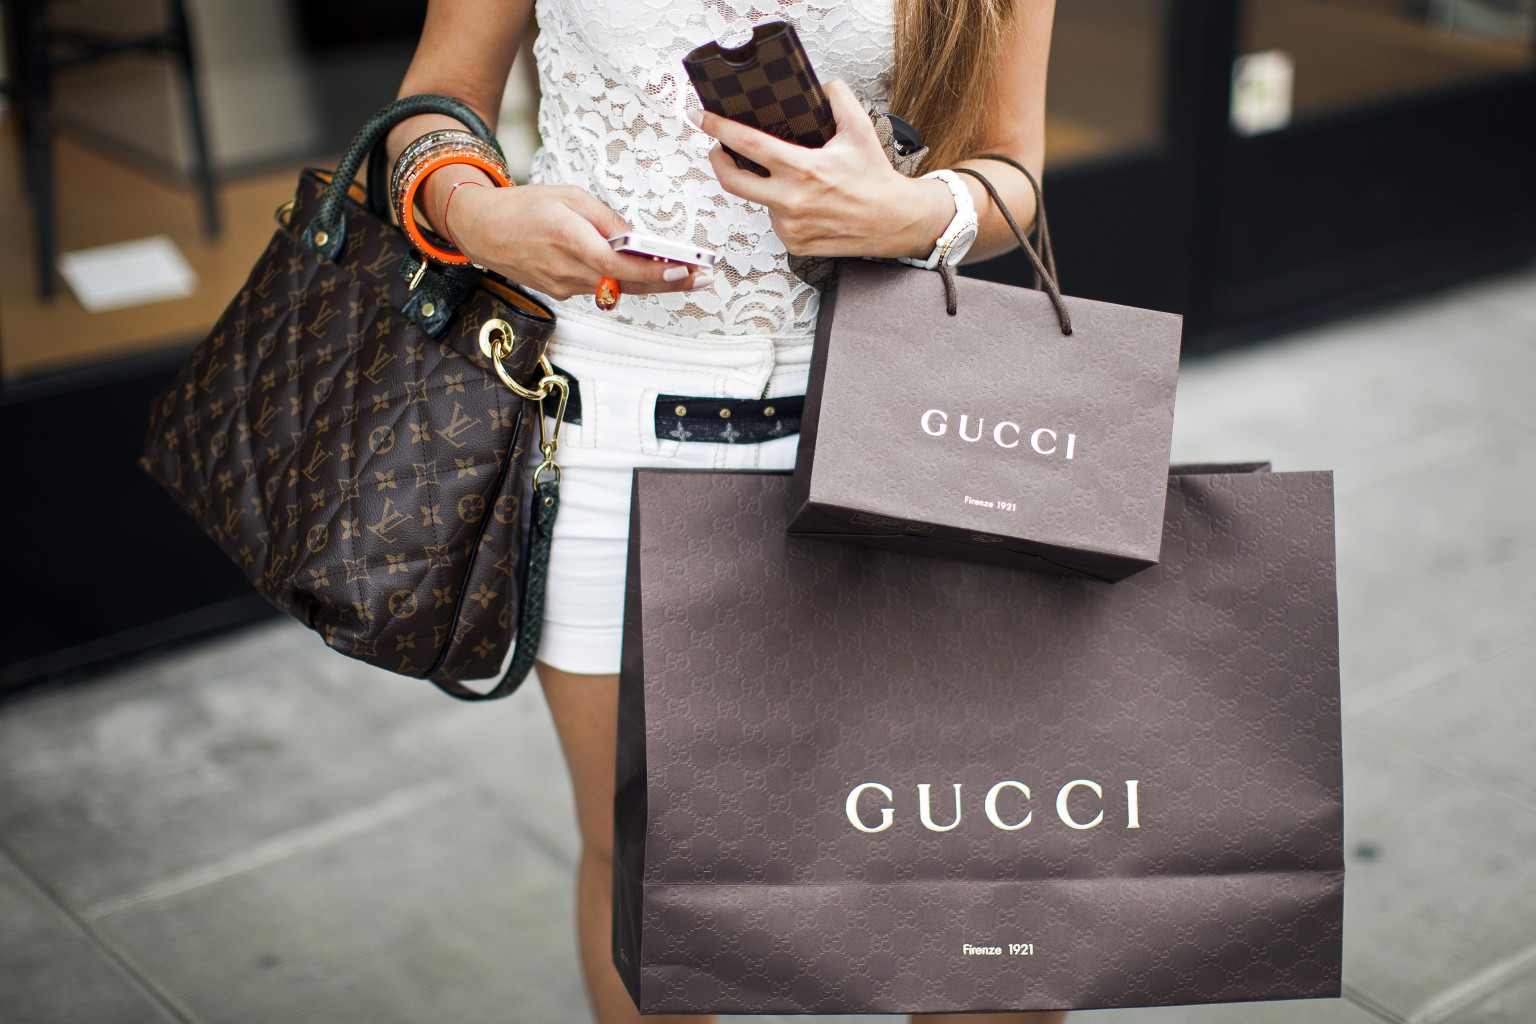 A pedestrian carries Gucci-branded shopping bags and a Louis Vuitton SA handbag as she walks along the Rue du Rhone in Geneva, Switzerland, on Saturday, June 9, 2012. Swiss economic growth unexpectedly accelerated in the first quarter, led by consumer demand. Photographer: Valentin Flauraud/Bloomberg via Getty Images